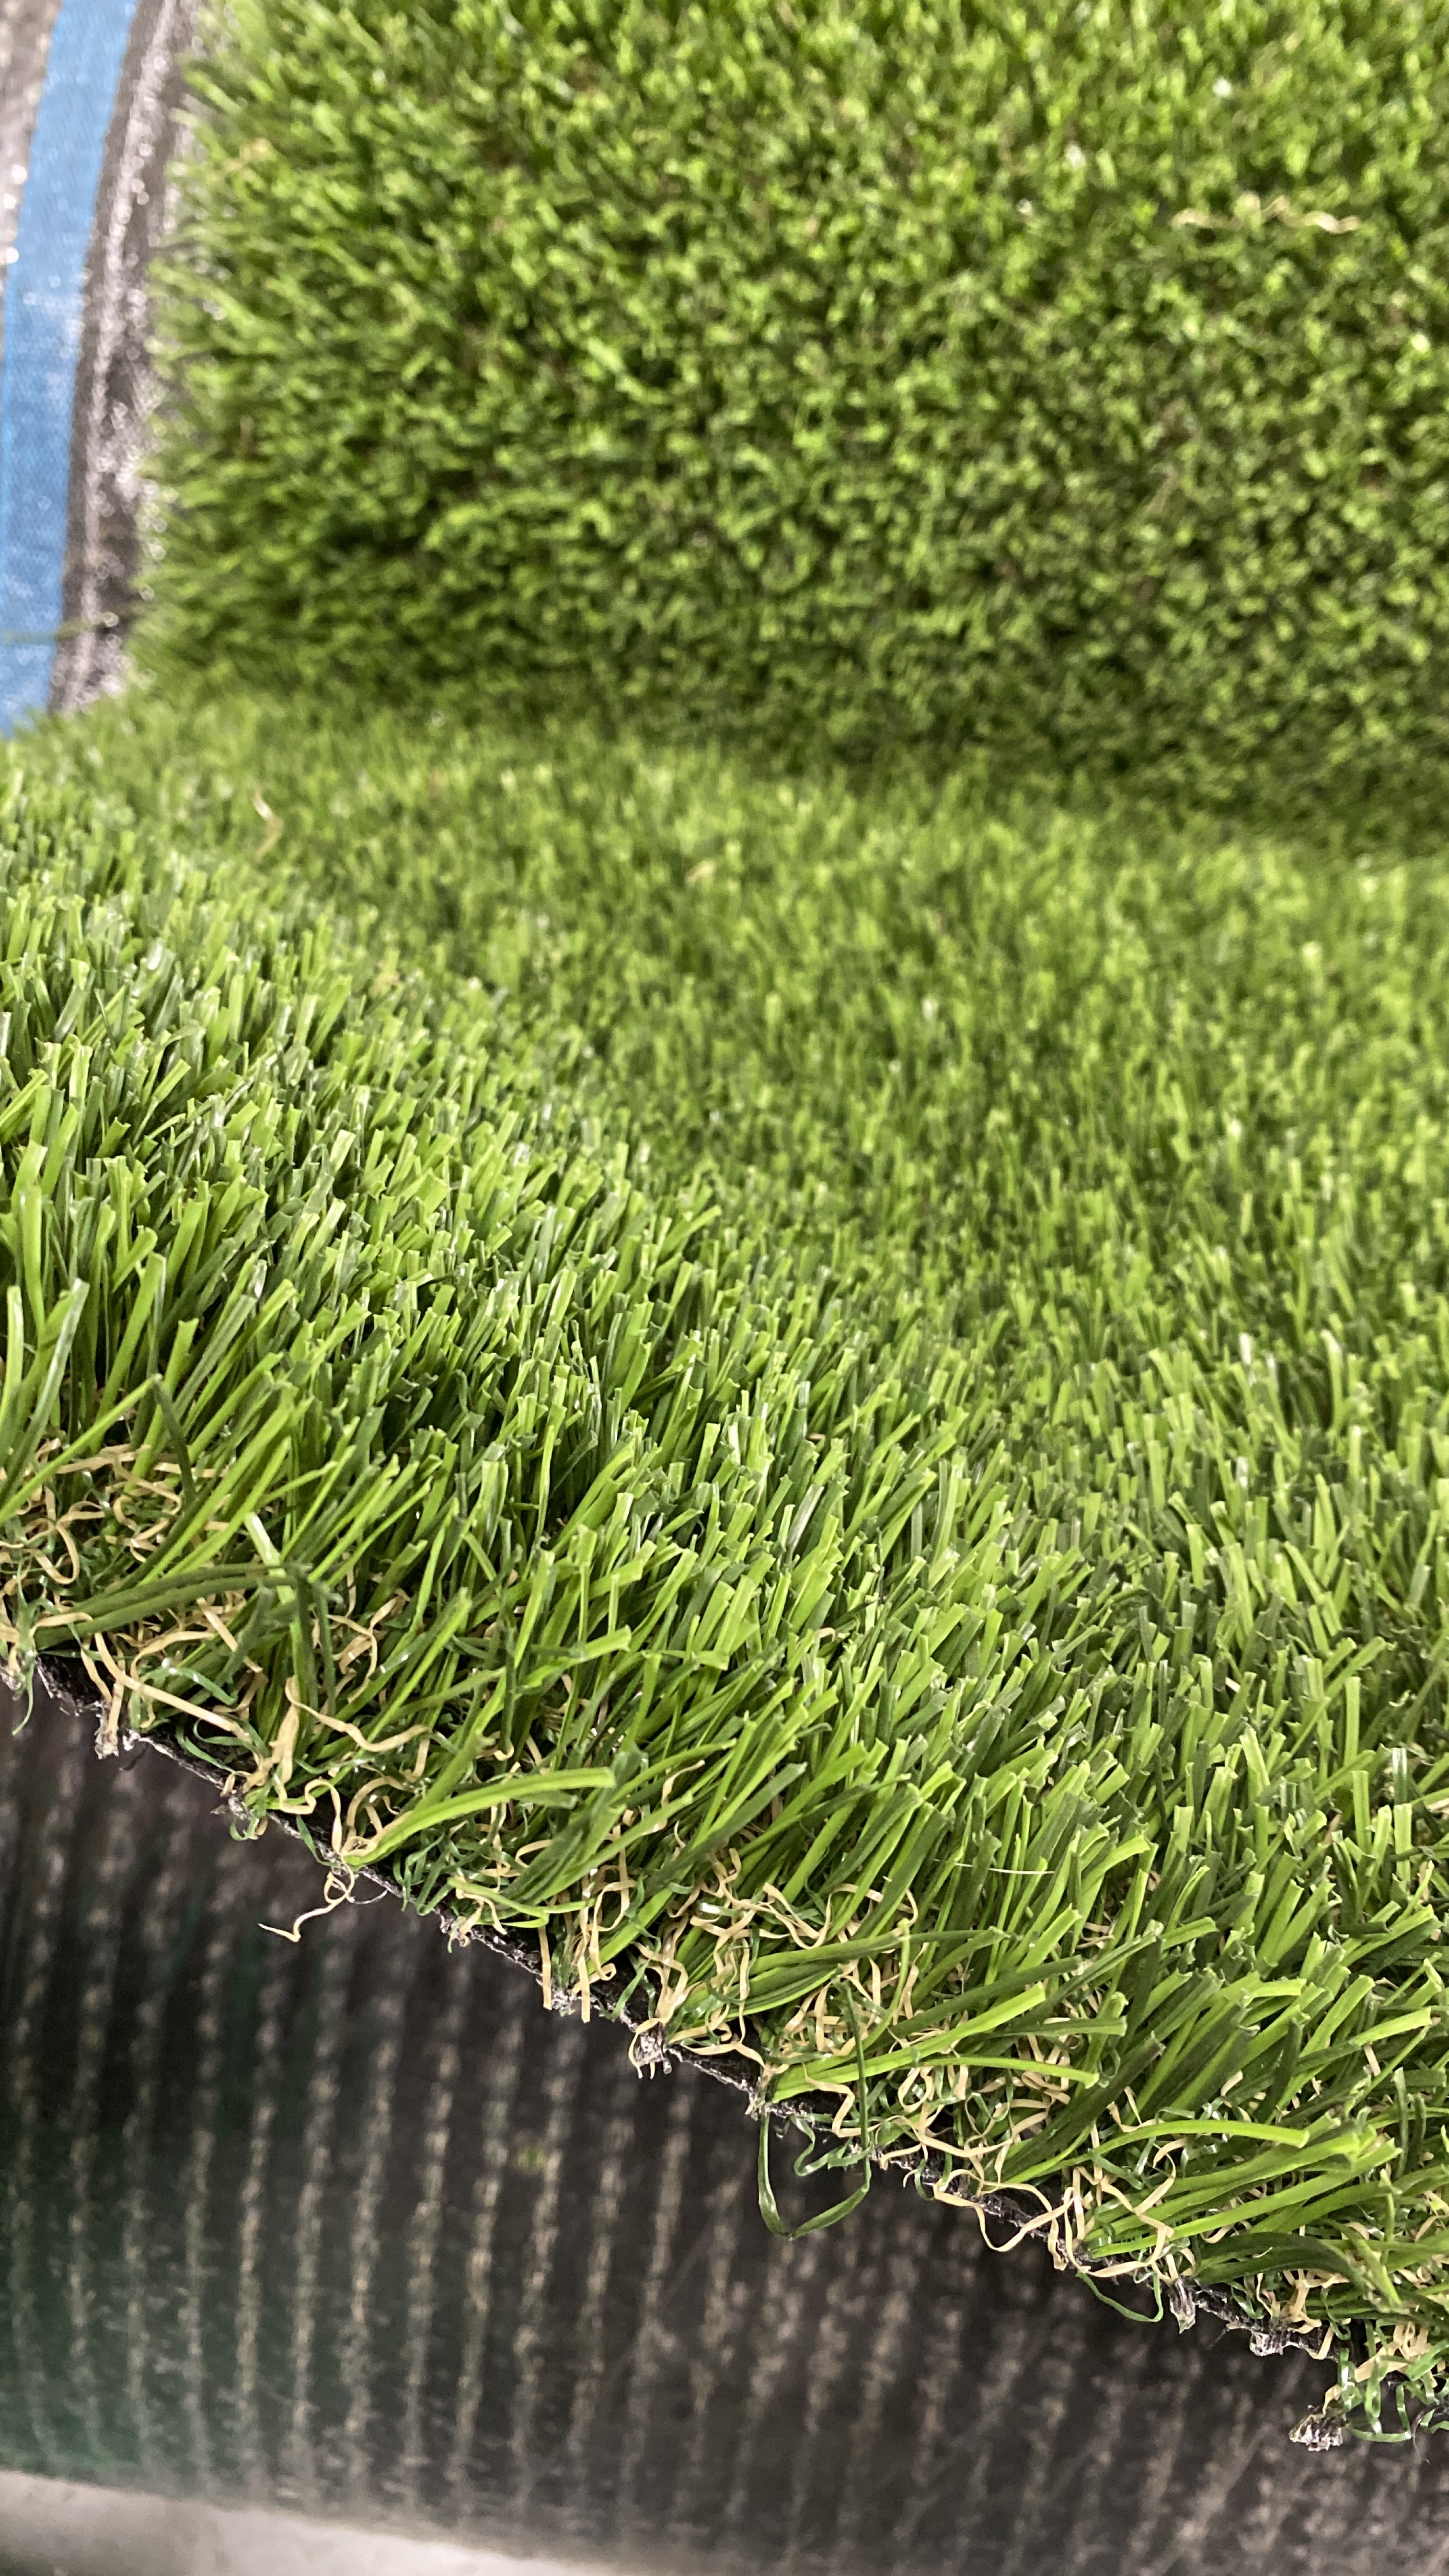 Double S-72 artificial grass cost,artificial grass for dogs,home depot artificial grass,artificial turf for dogs,artificial grass reviews,artificial grasses,fake grasses,how much does artificial turf cost,how much does synthetic grass cost,how much does it cost to install fake grass,how much does turf grass cost,how much does synthetic grass cost installed